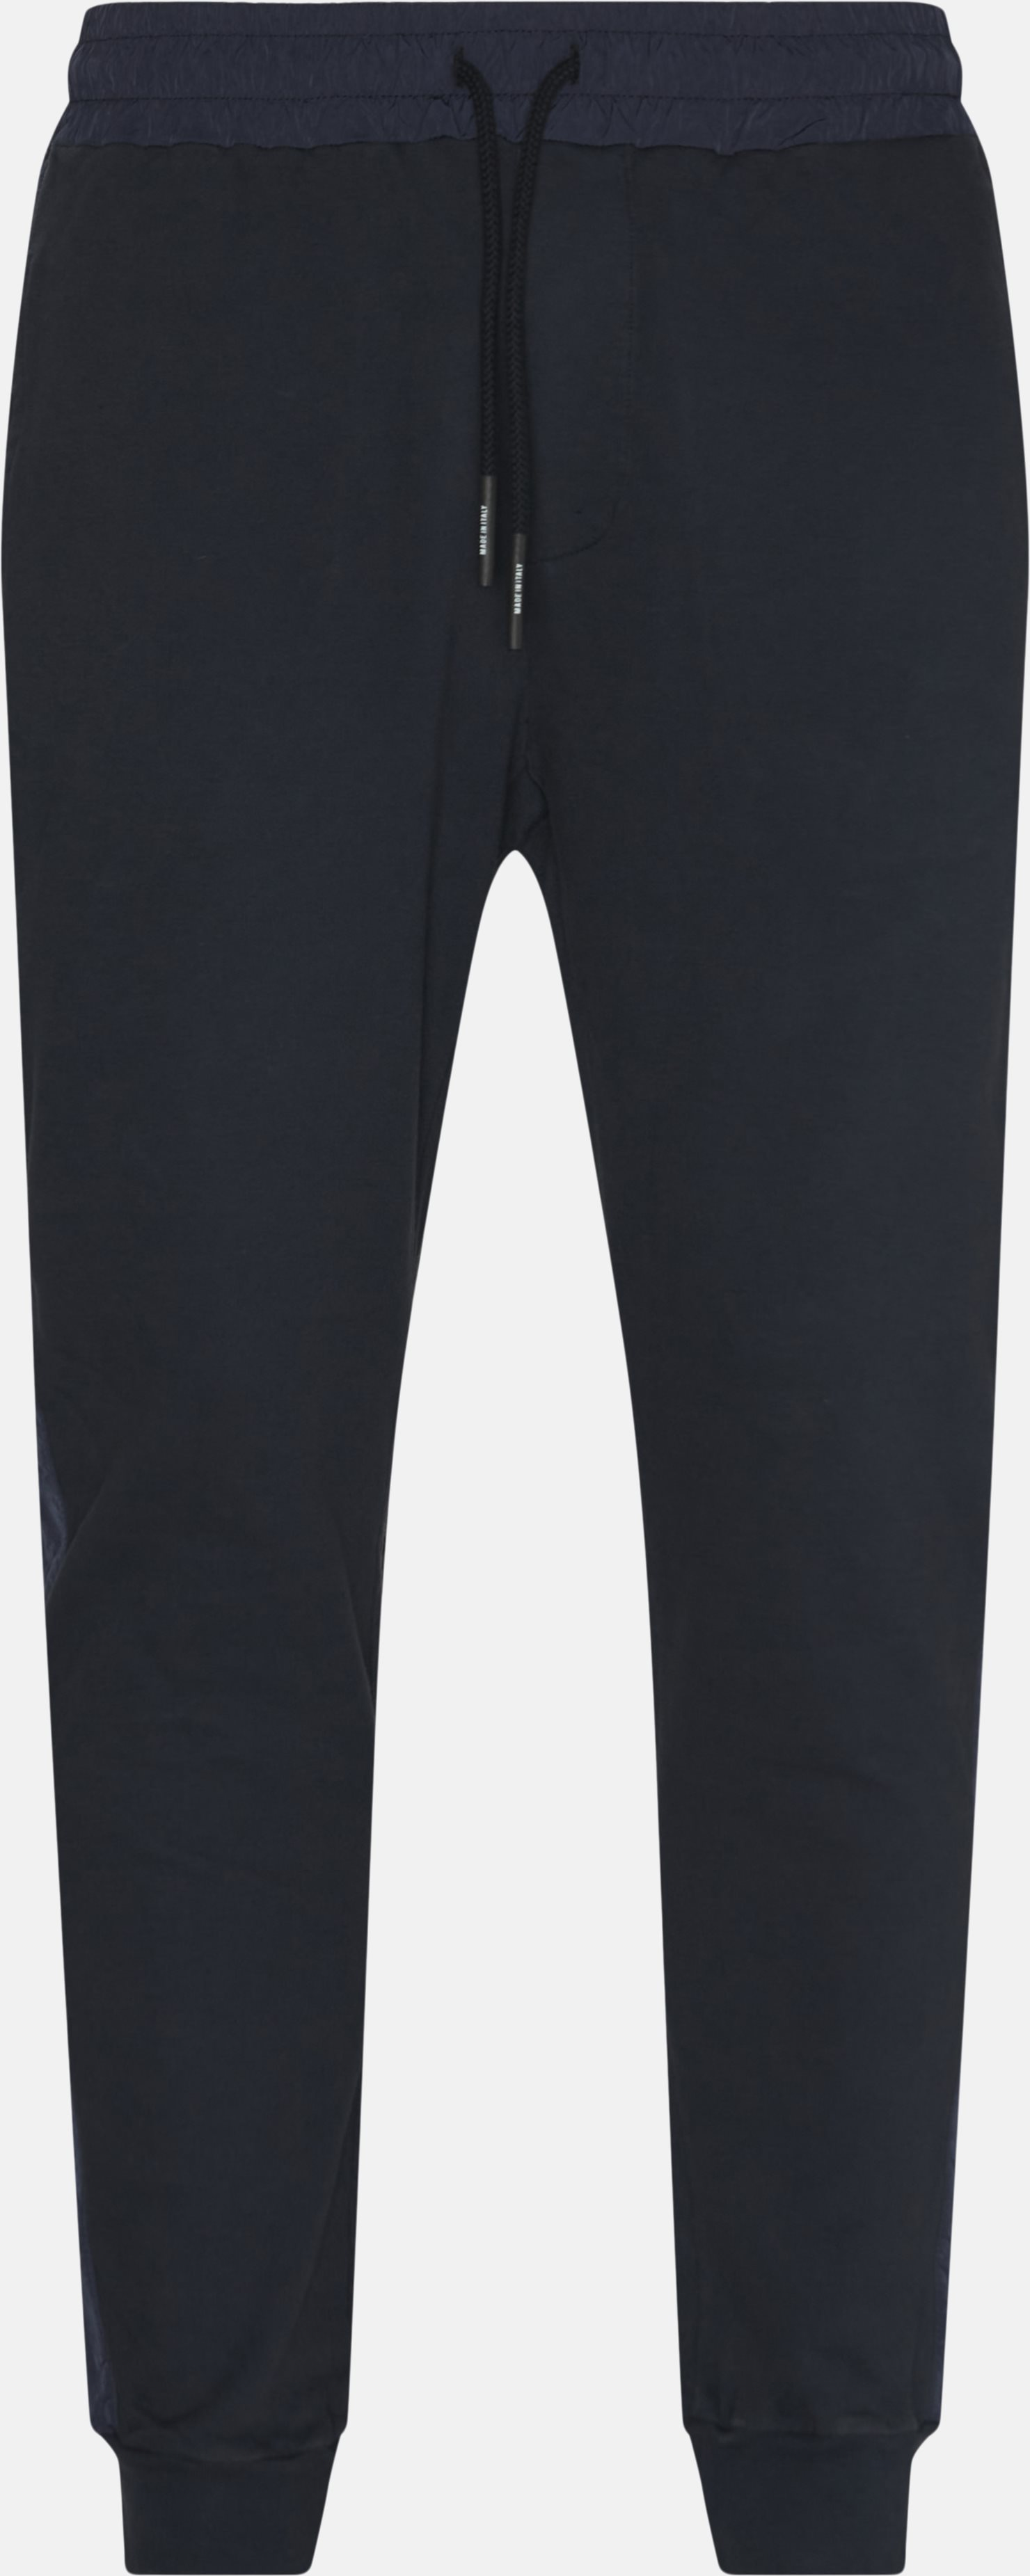 Trackpants  - Bukser - Regular - Blå